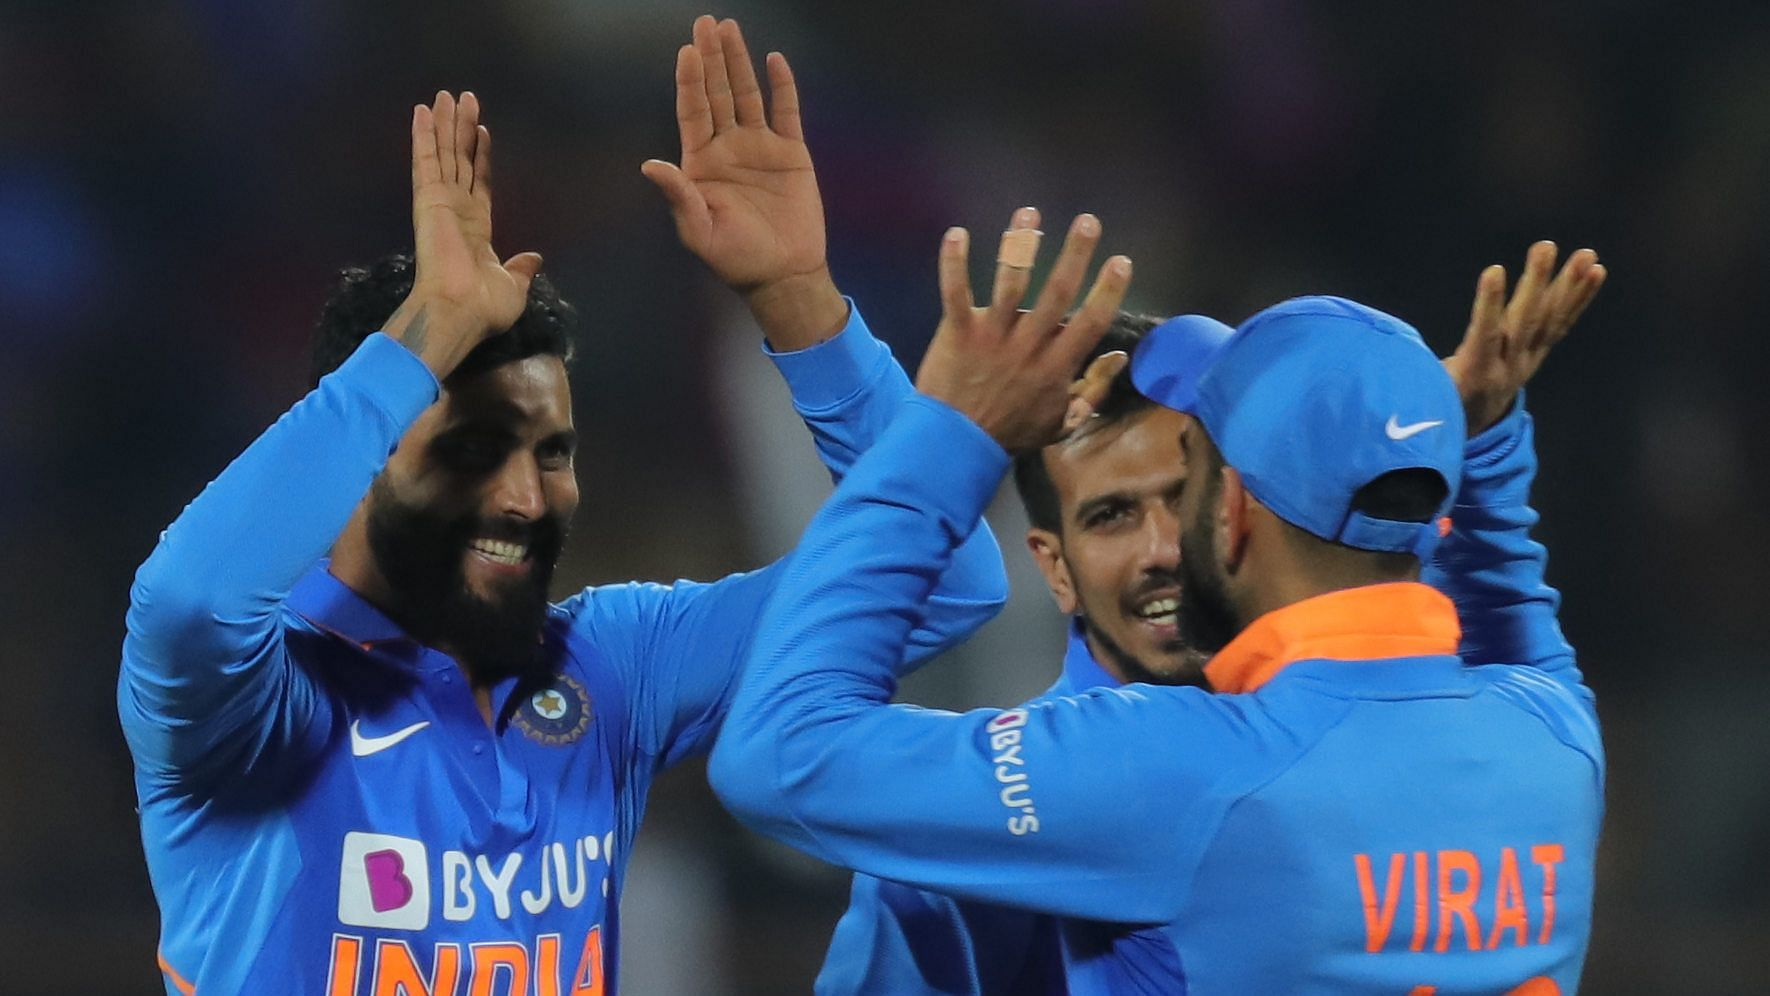 2nd ODI: Shami Misses Hat-Trick, India 3 Wickets Away From Victory